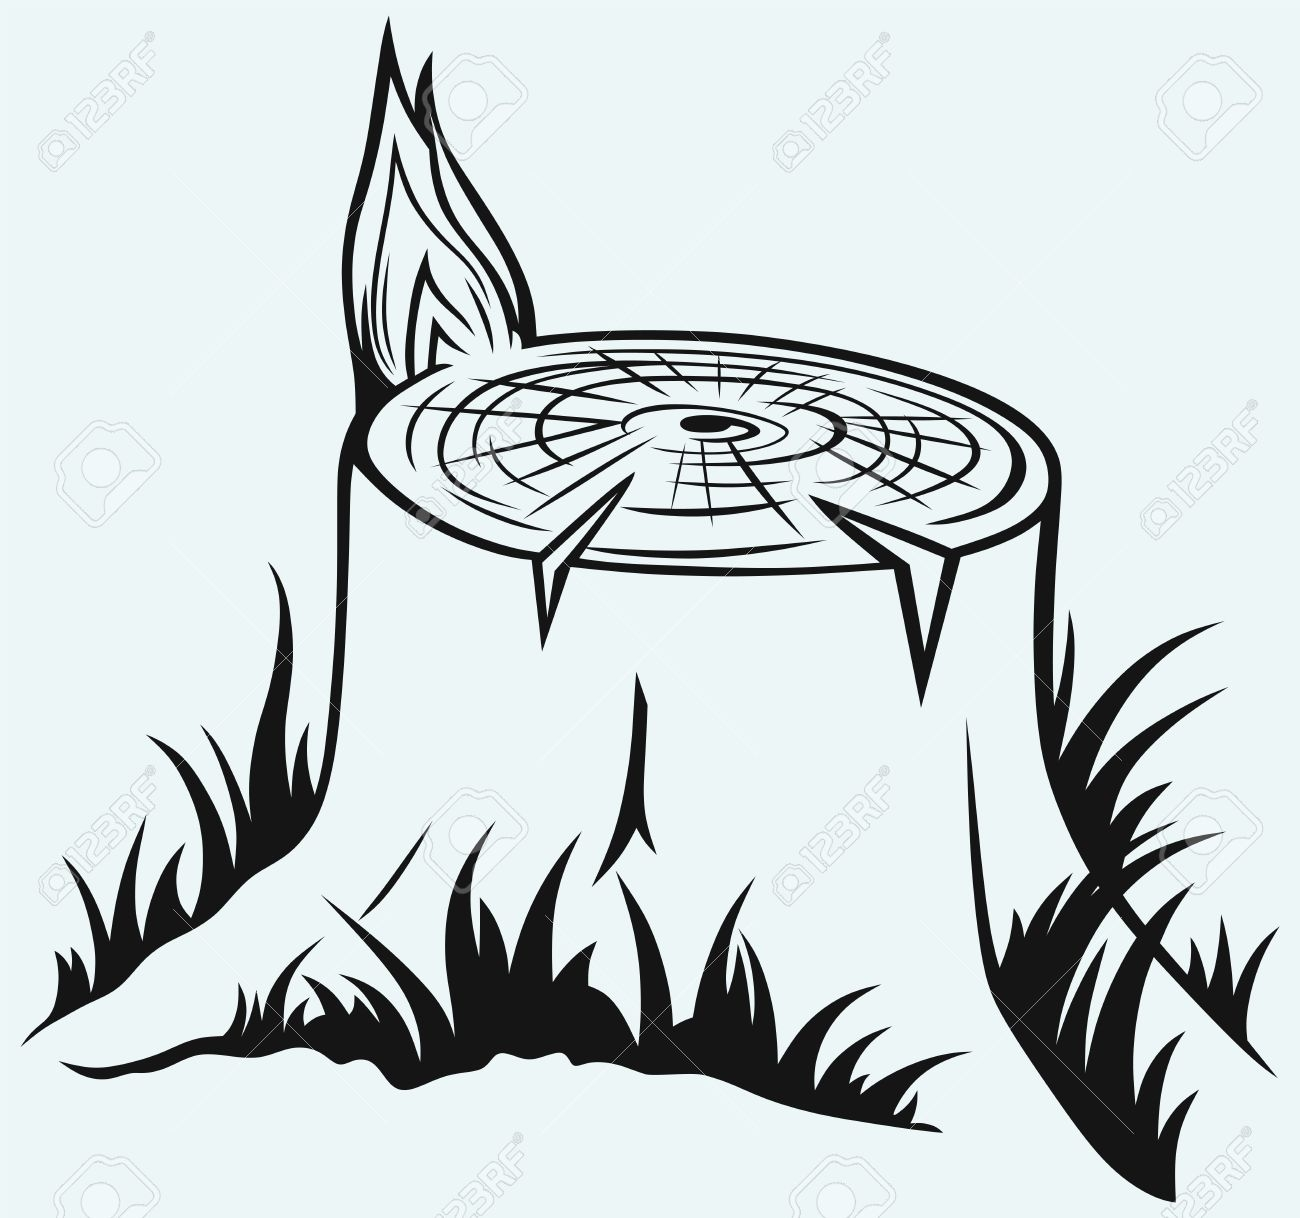 Hollow tree stump clipart - Clipground